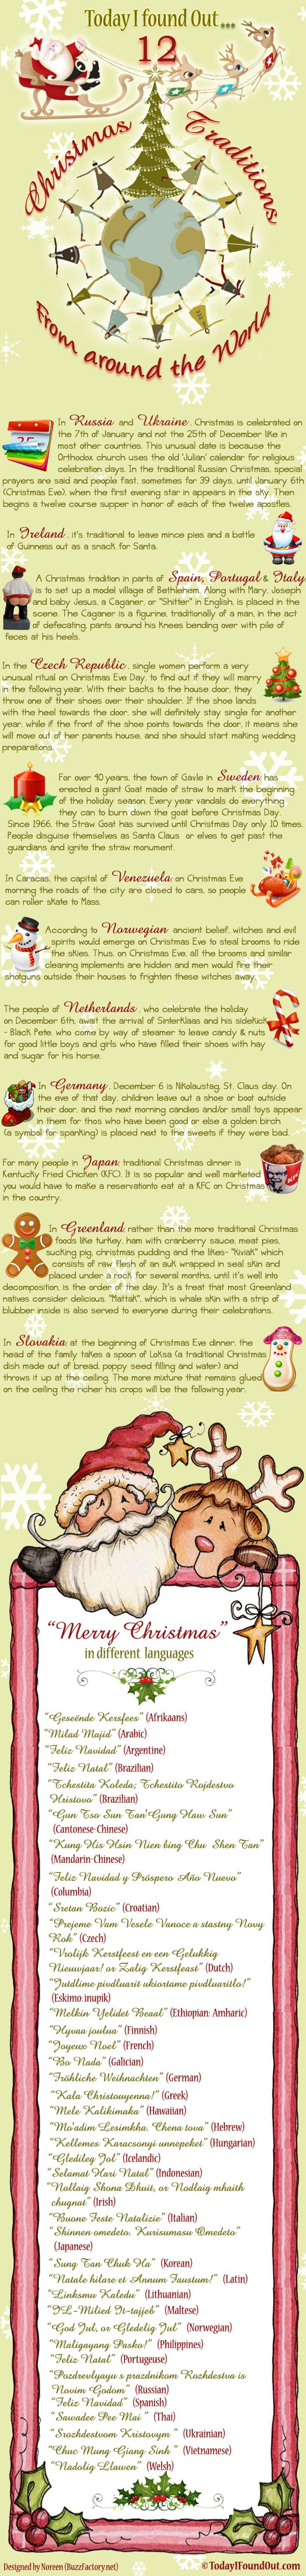 christmas traditions from around the world infographic. Black Bedroom Furniture Sets. Home Design Ideas